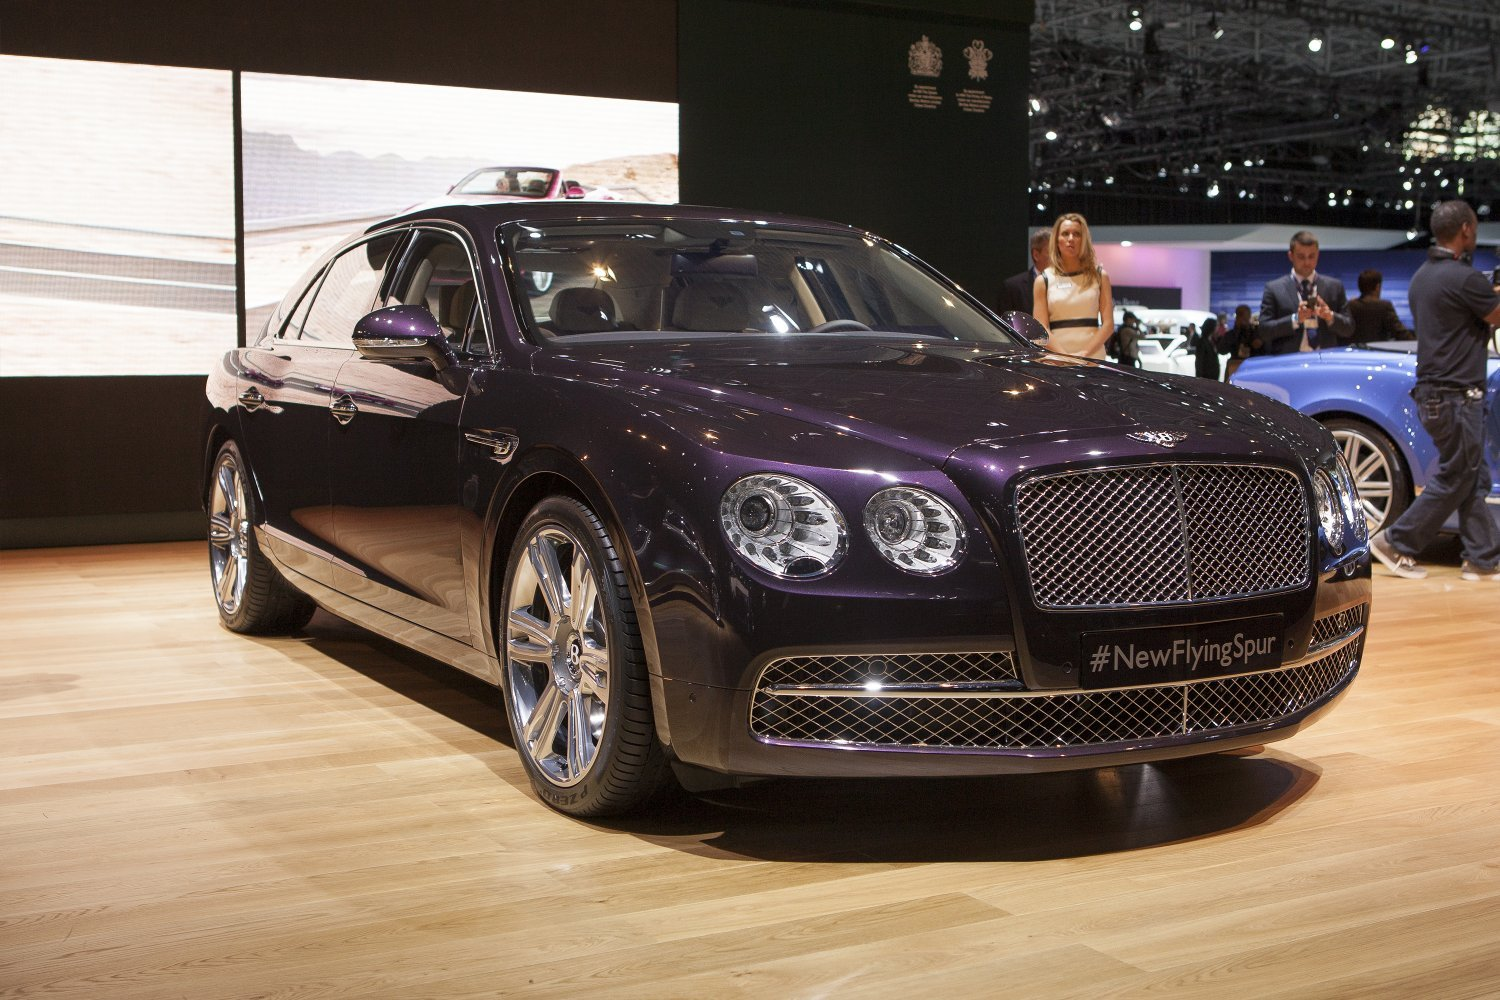 2014 Bentley Flying Spur Makes Its American Debut At The